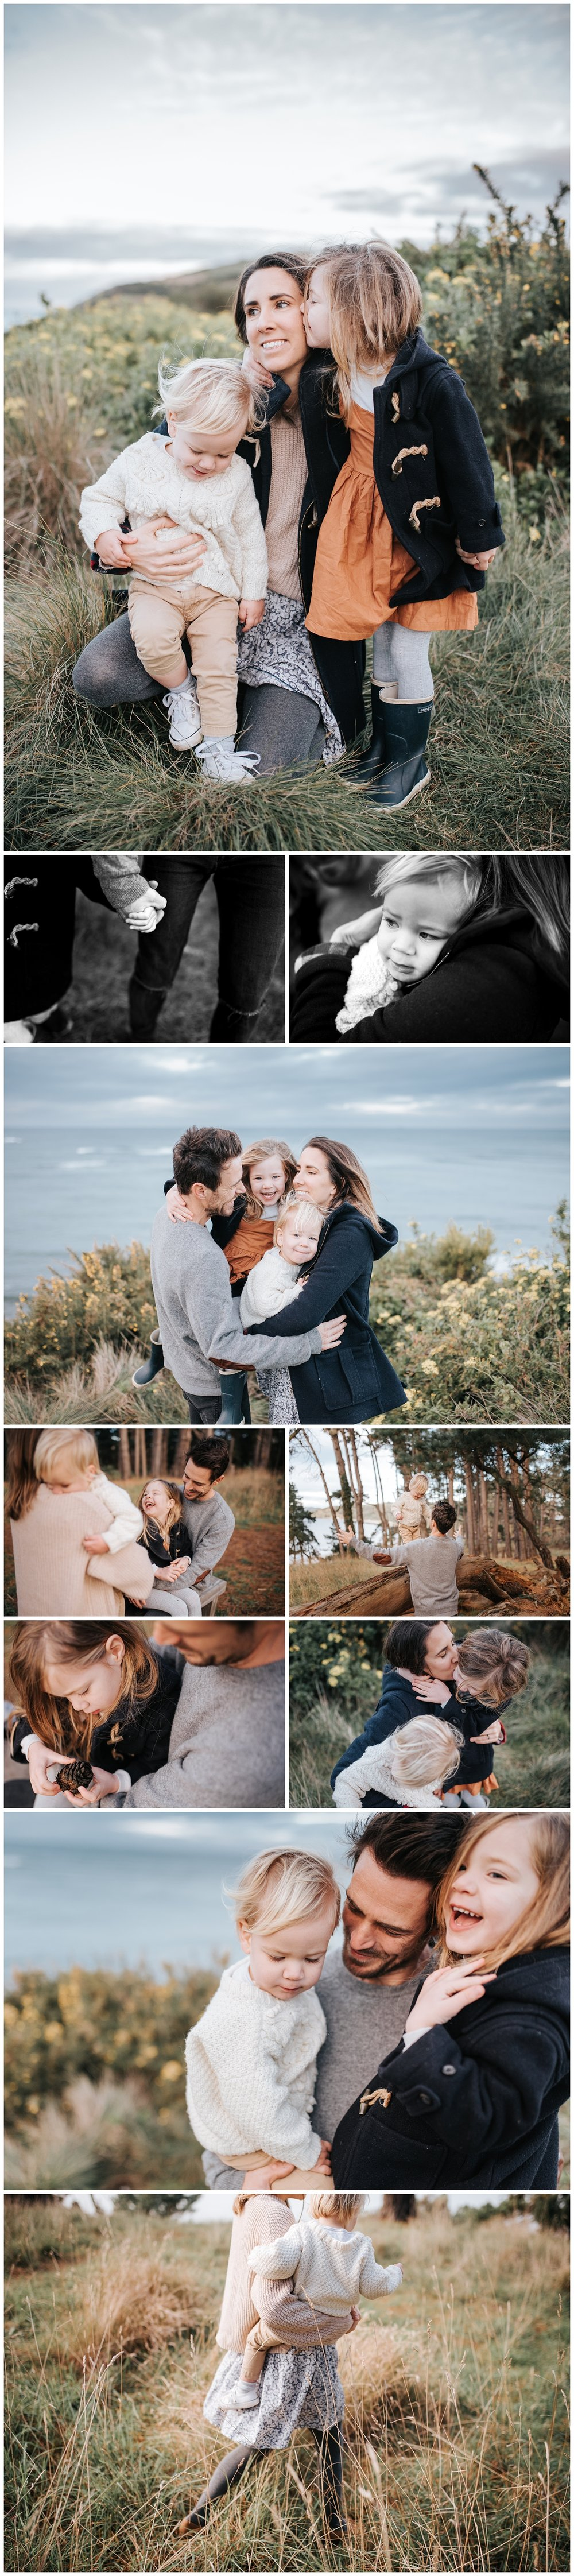 mornington peninsula family photography